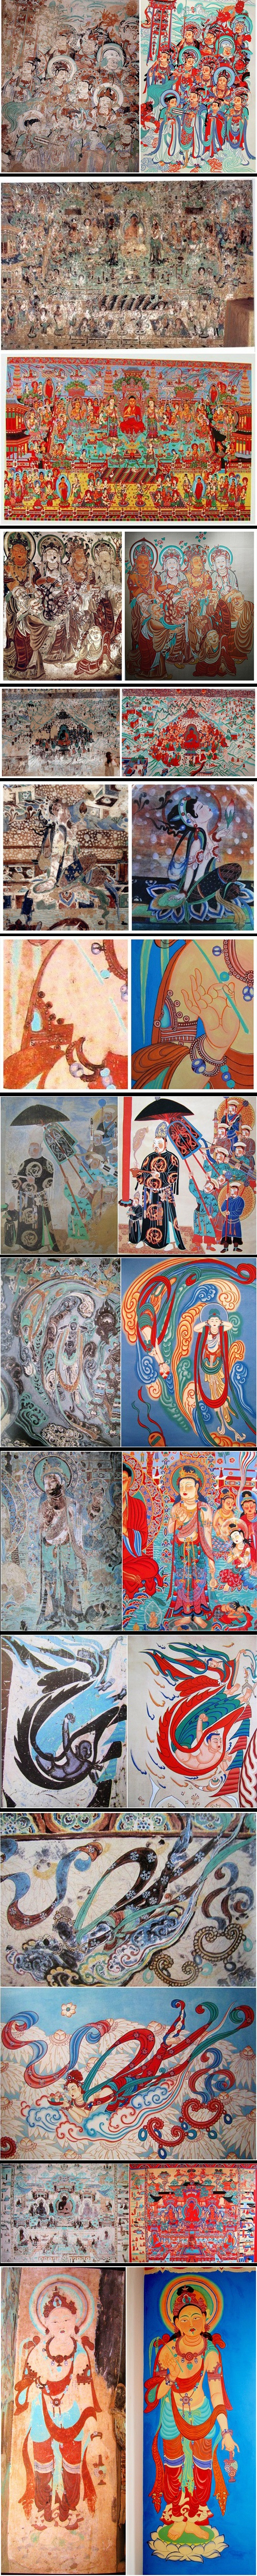 Mogao Caves: Color now and before, after baptizing by the time we're get the history.